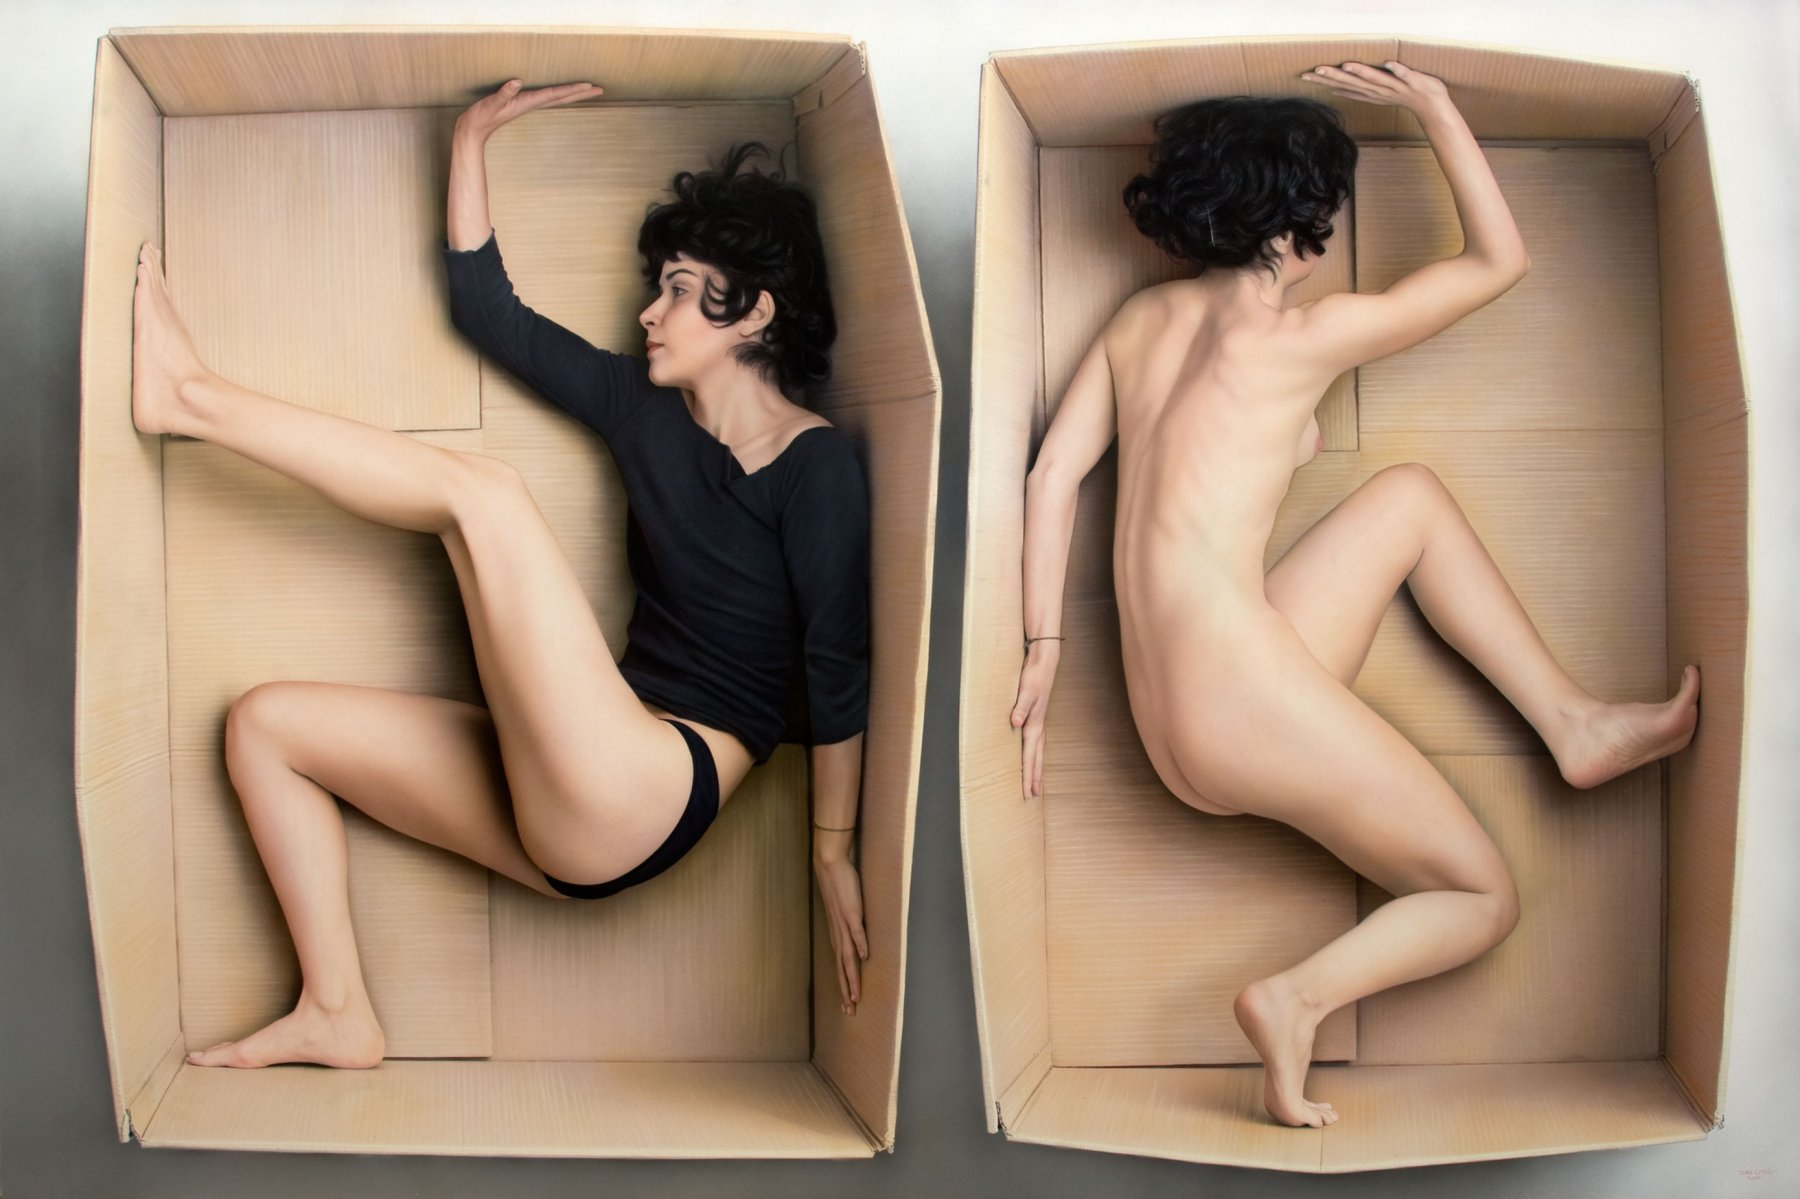 Boxed in - Juan Cossio